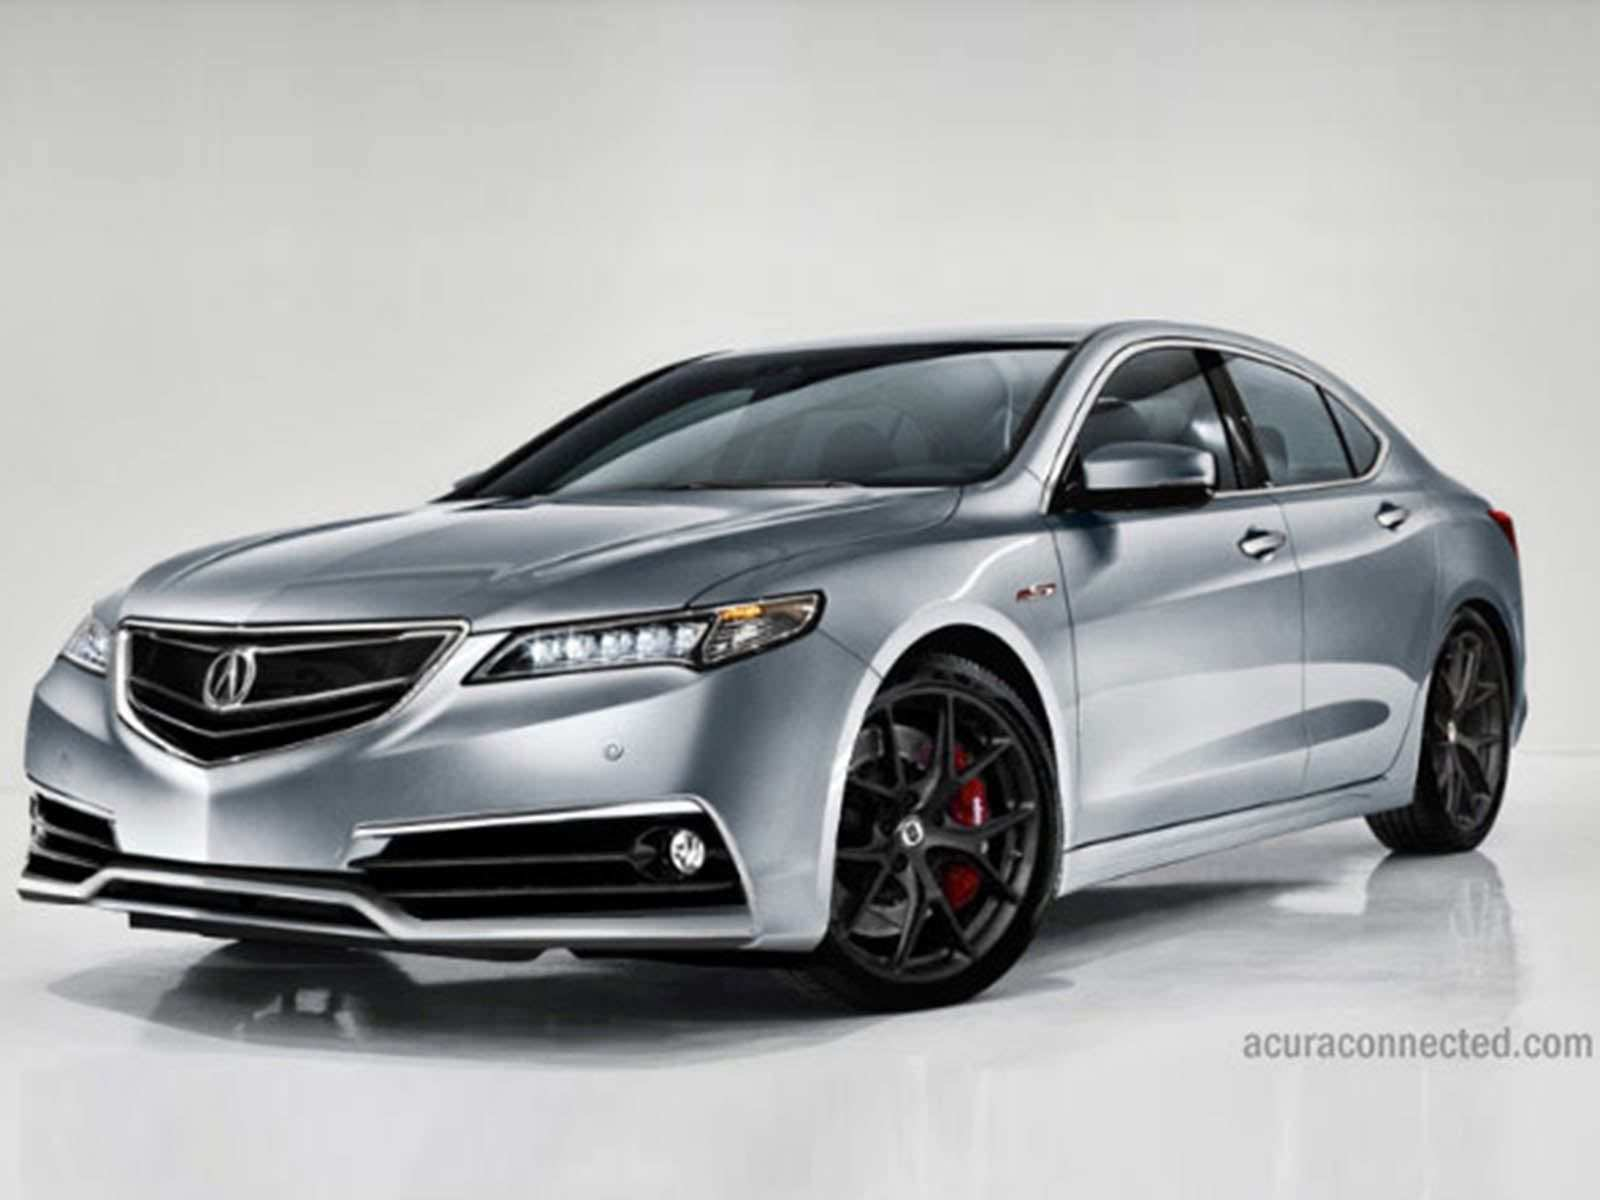 87 New 2019 Acura Tl Type S Release Date with 2019 Acura Tl Type S